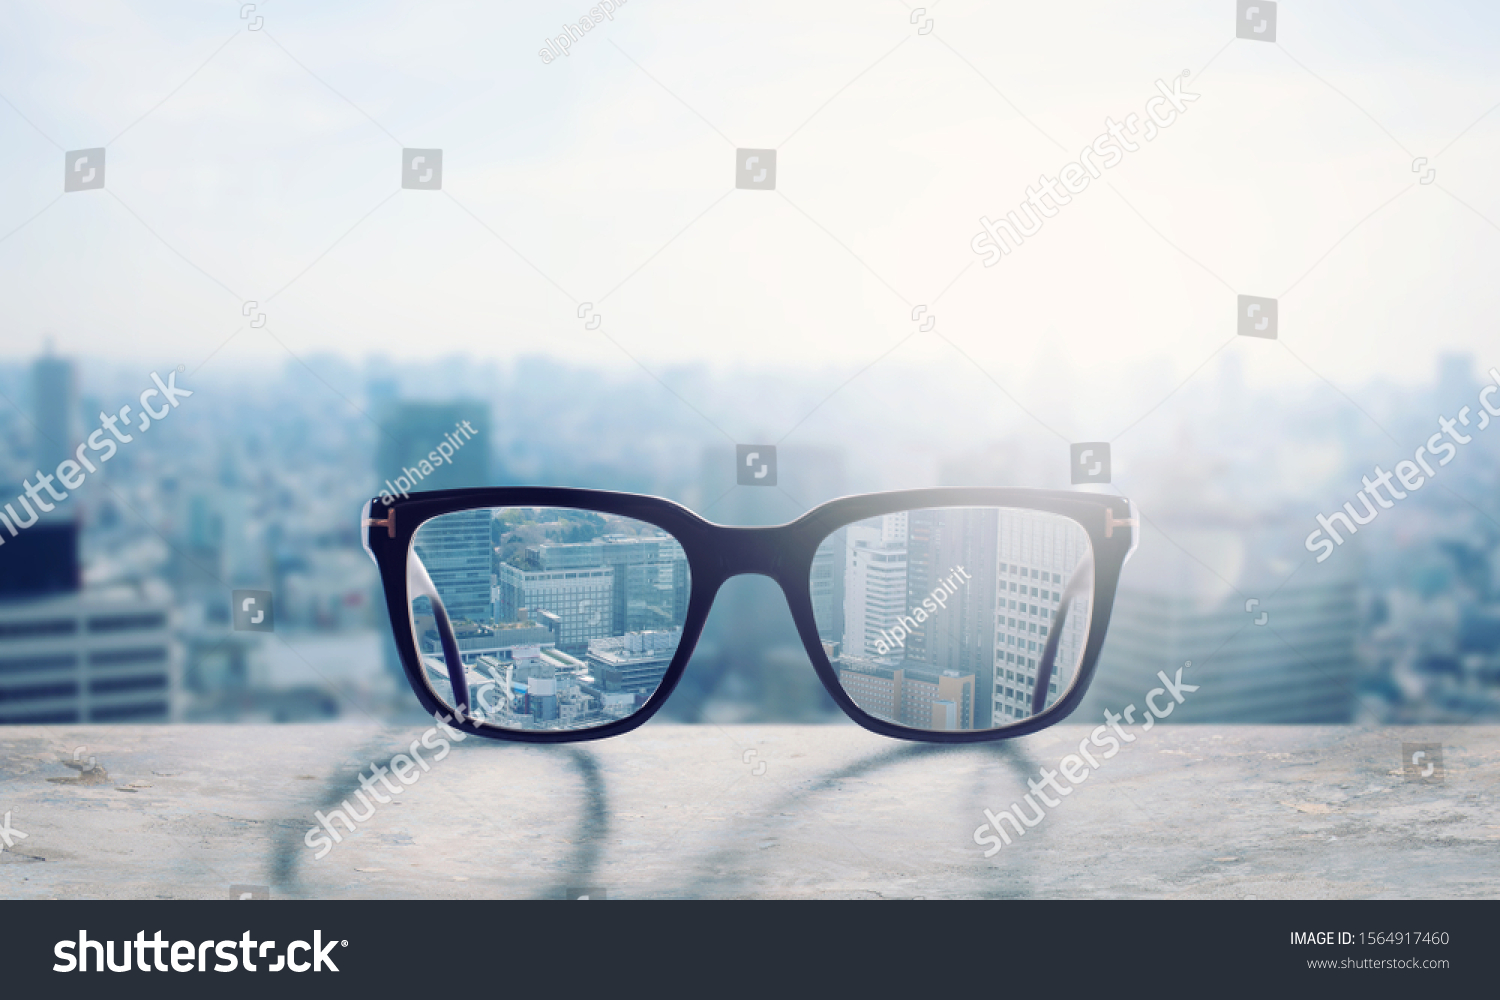 Glasses that correct eyesight from blurred to sharp #1564917460